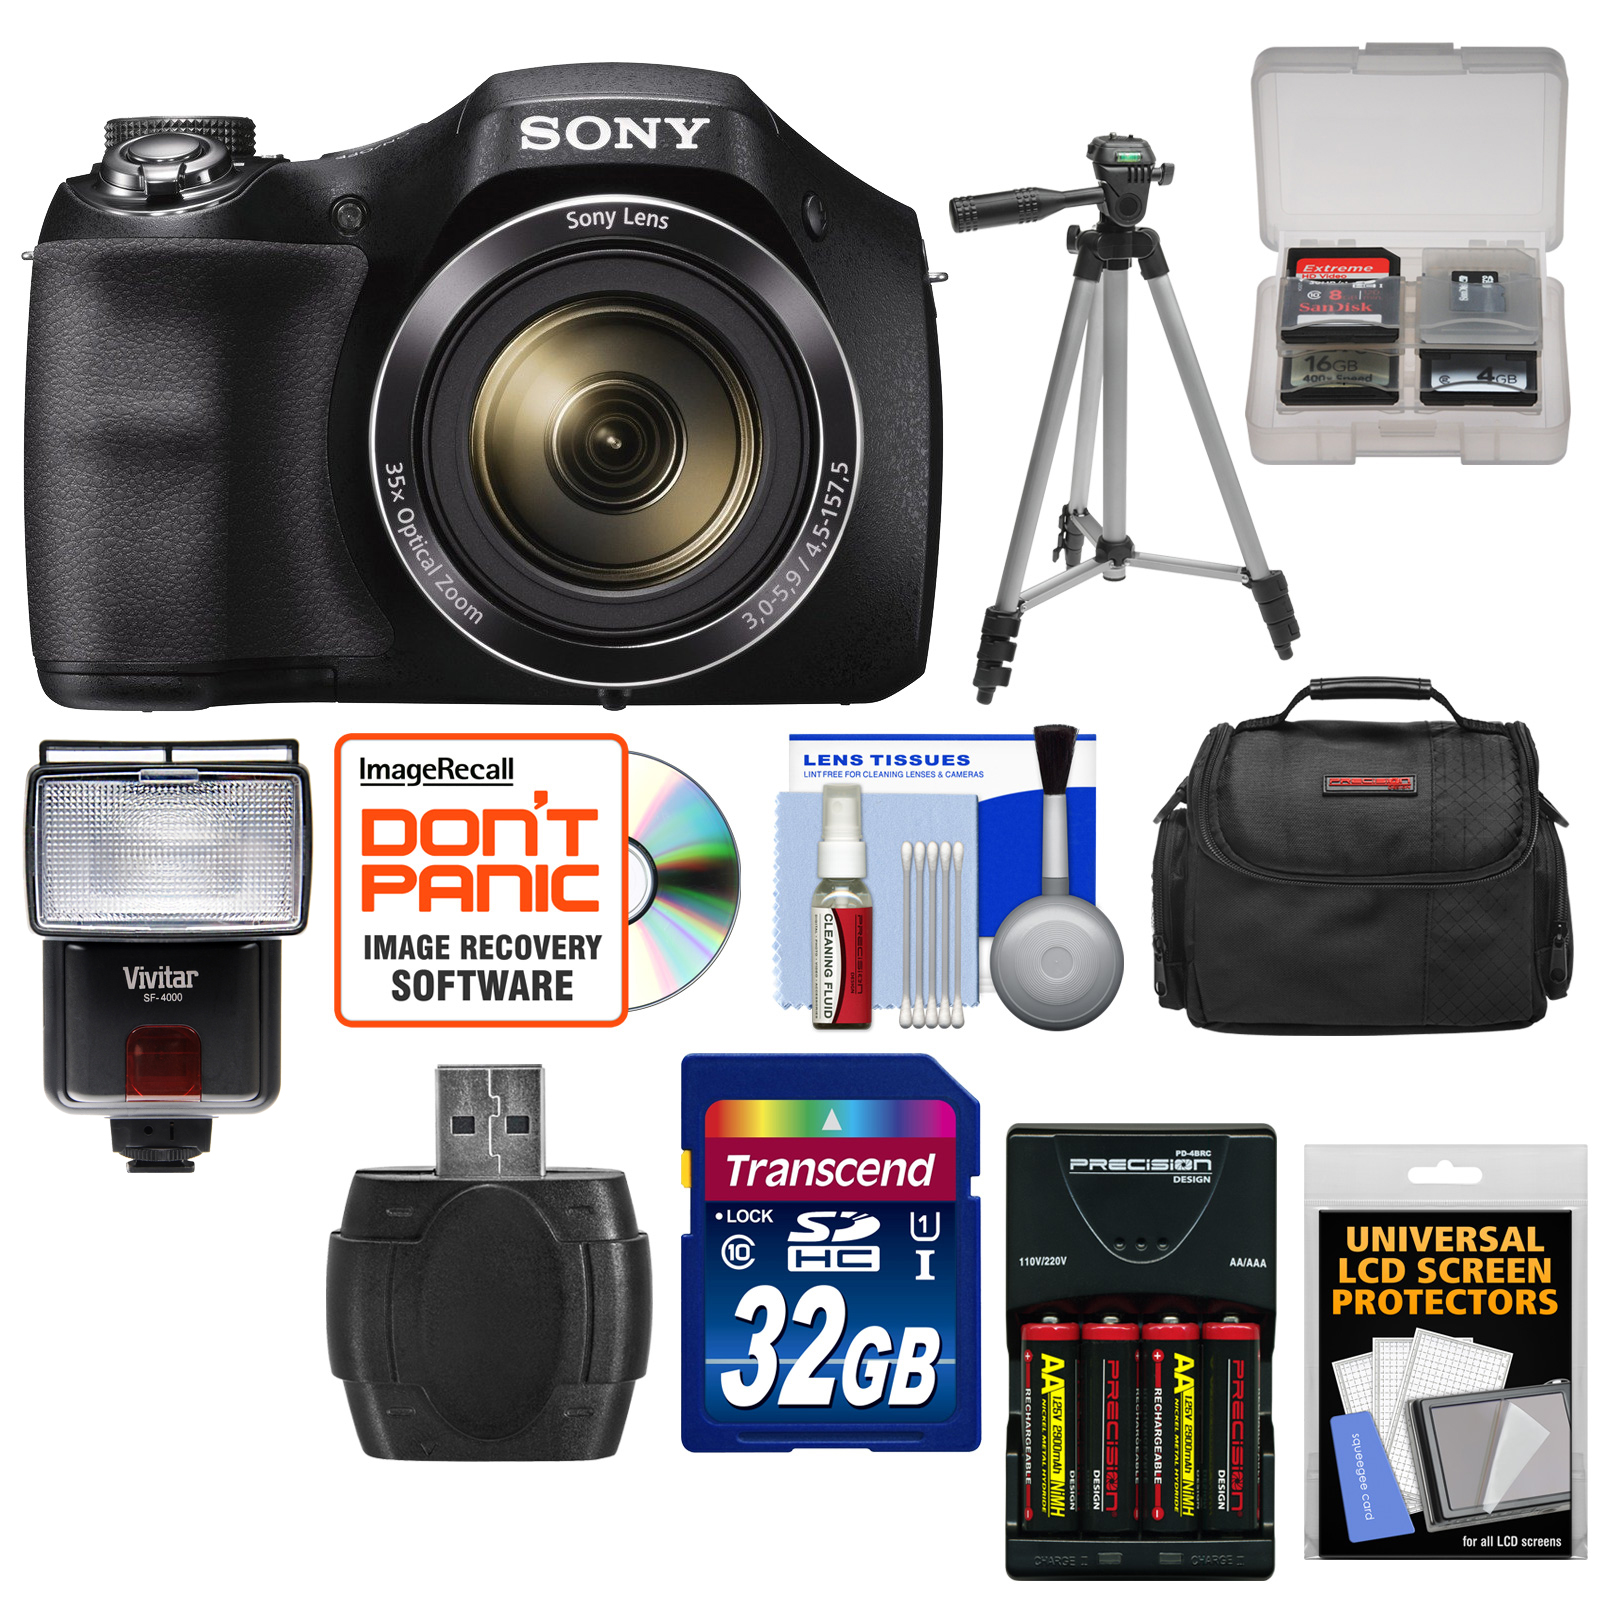 Sony Cyber-Shot DSC-H300 Digital Camera with 32GB Card + Batteries & Charger + Case + Tripod + Flash & Video Light + Kit